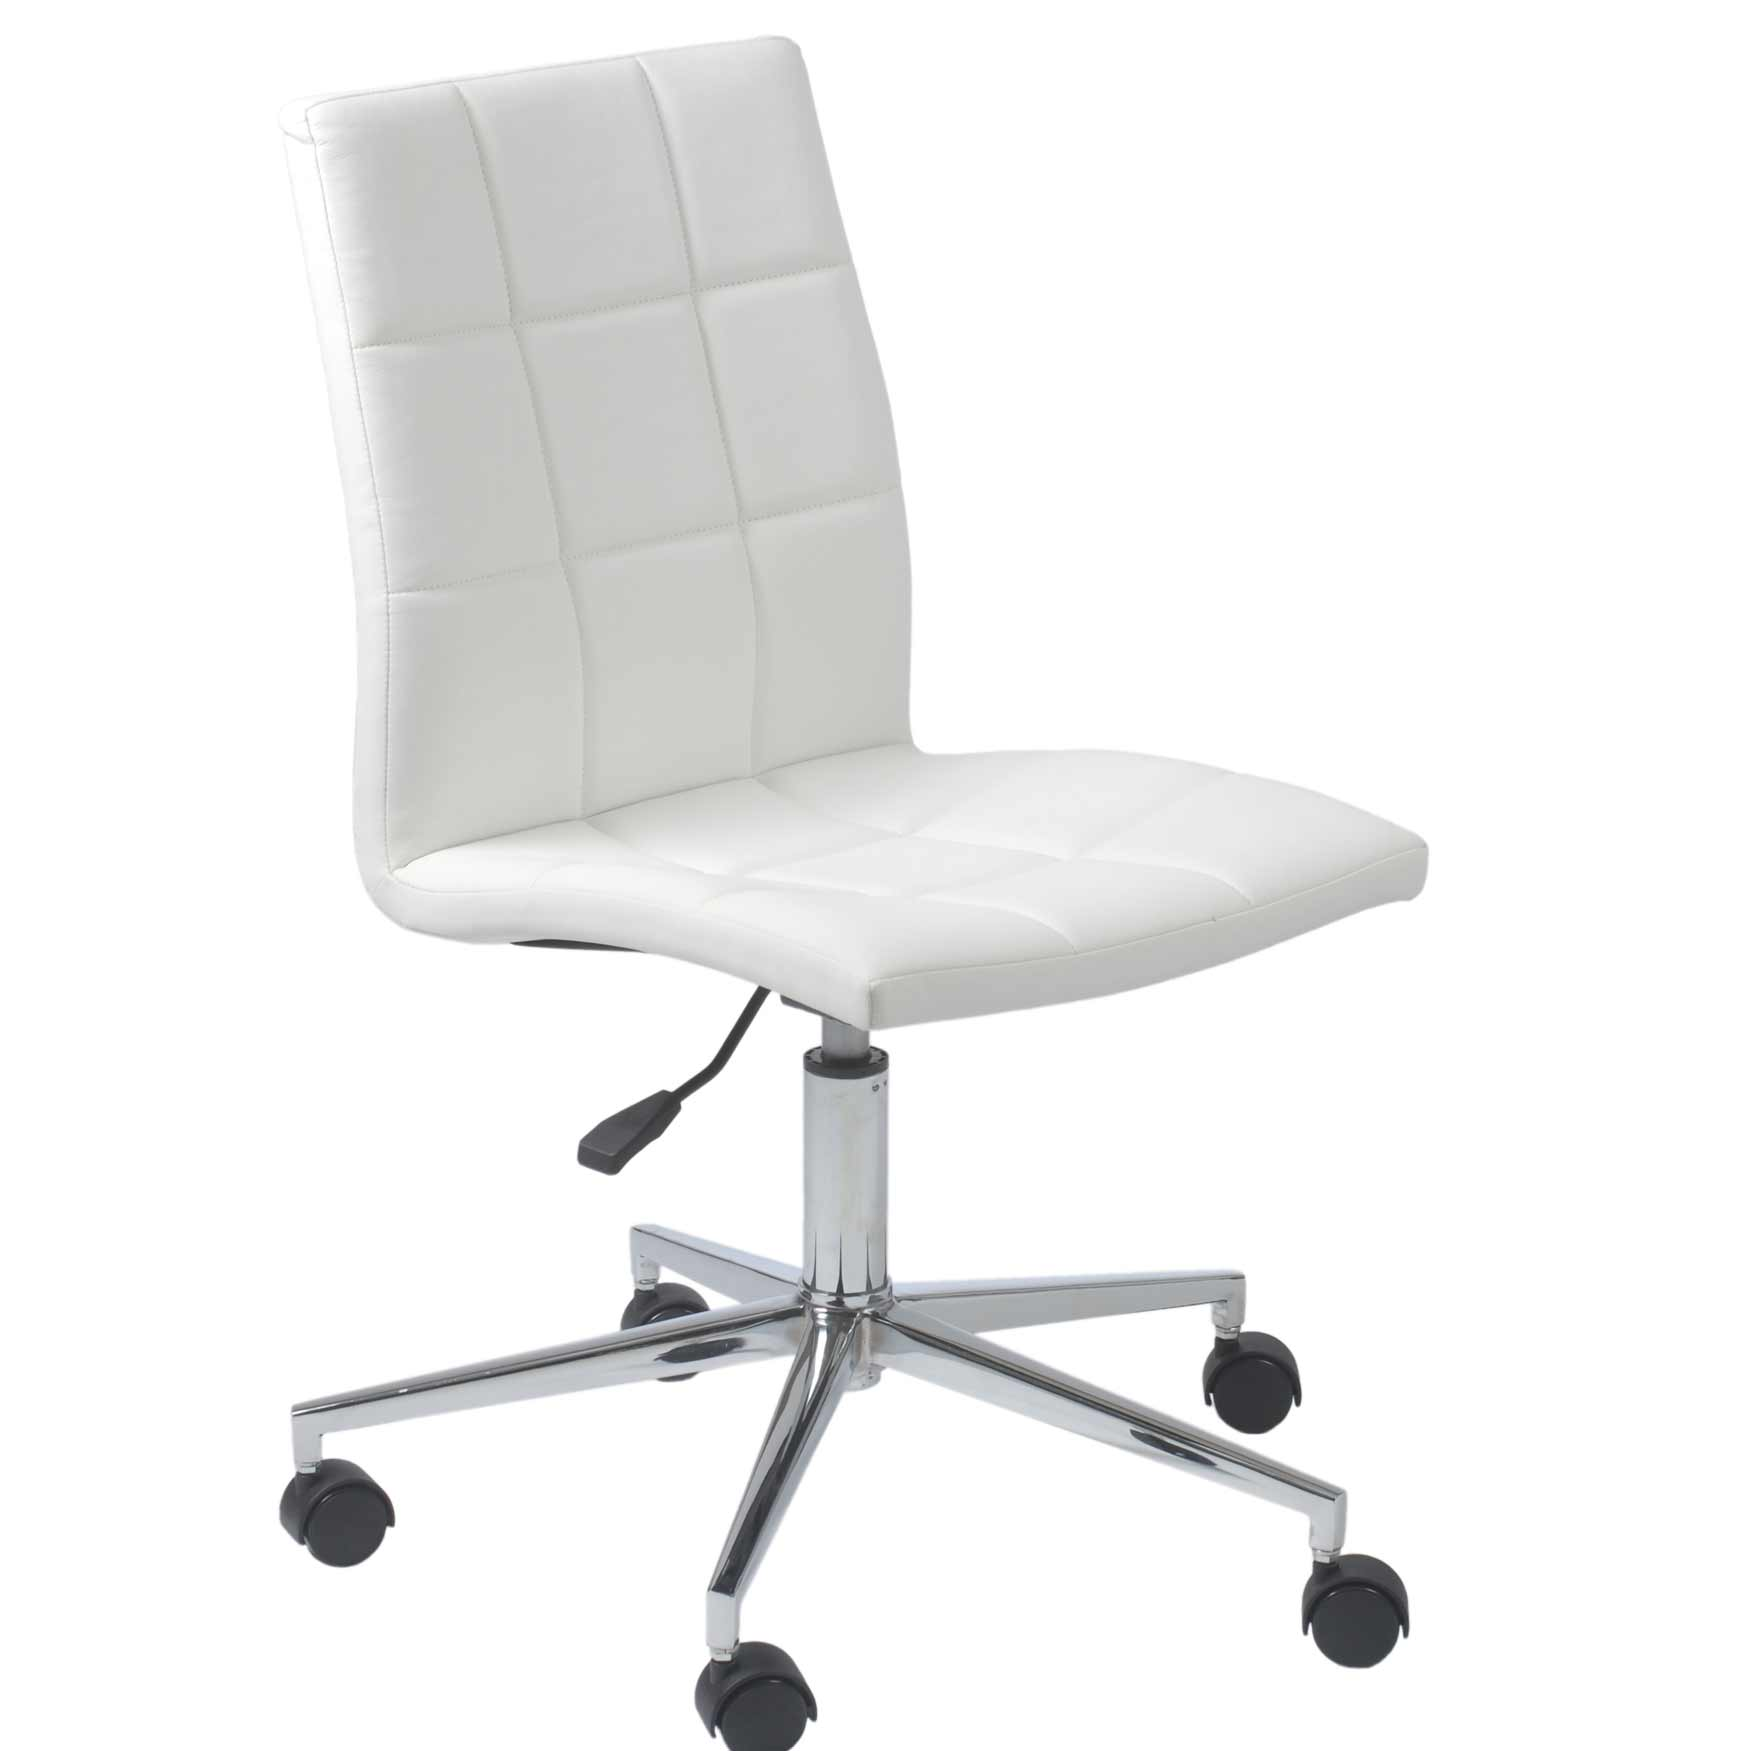 Armless Desk Chairs Leather Armless Chair Office Furniture